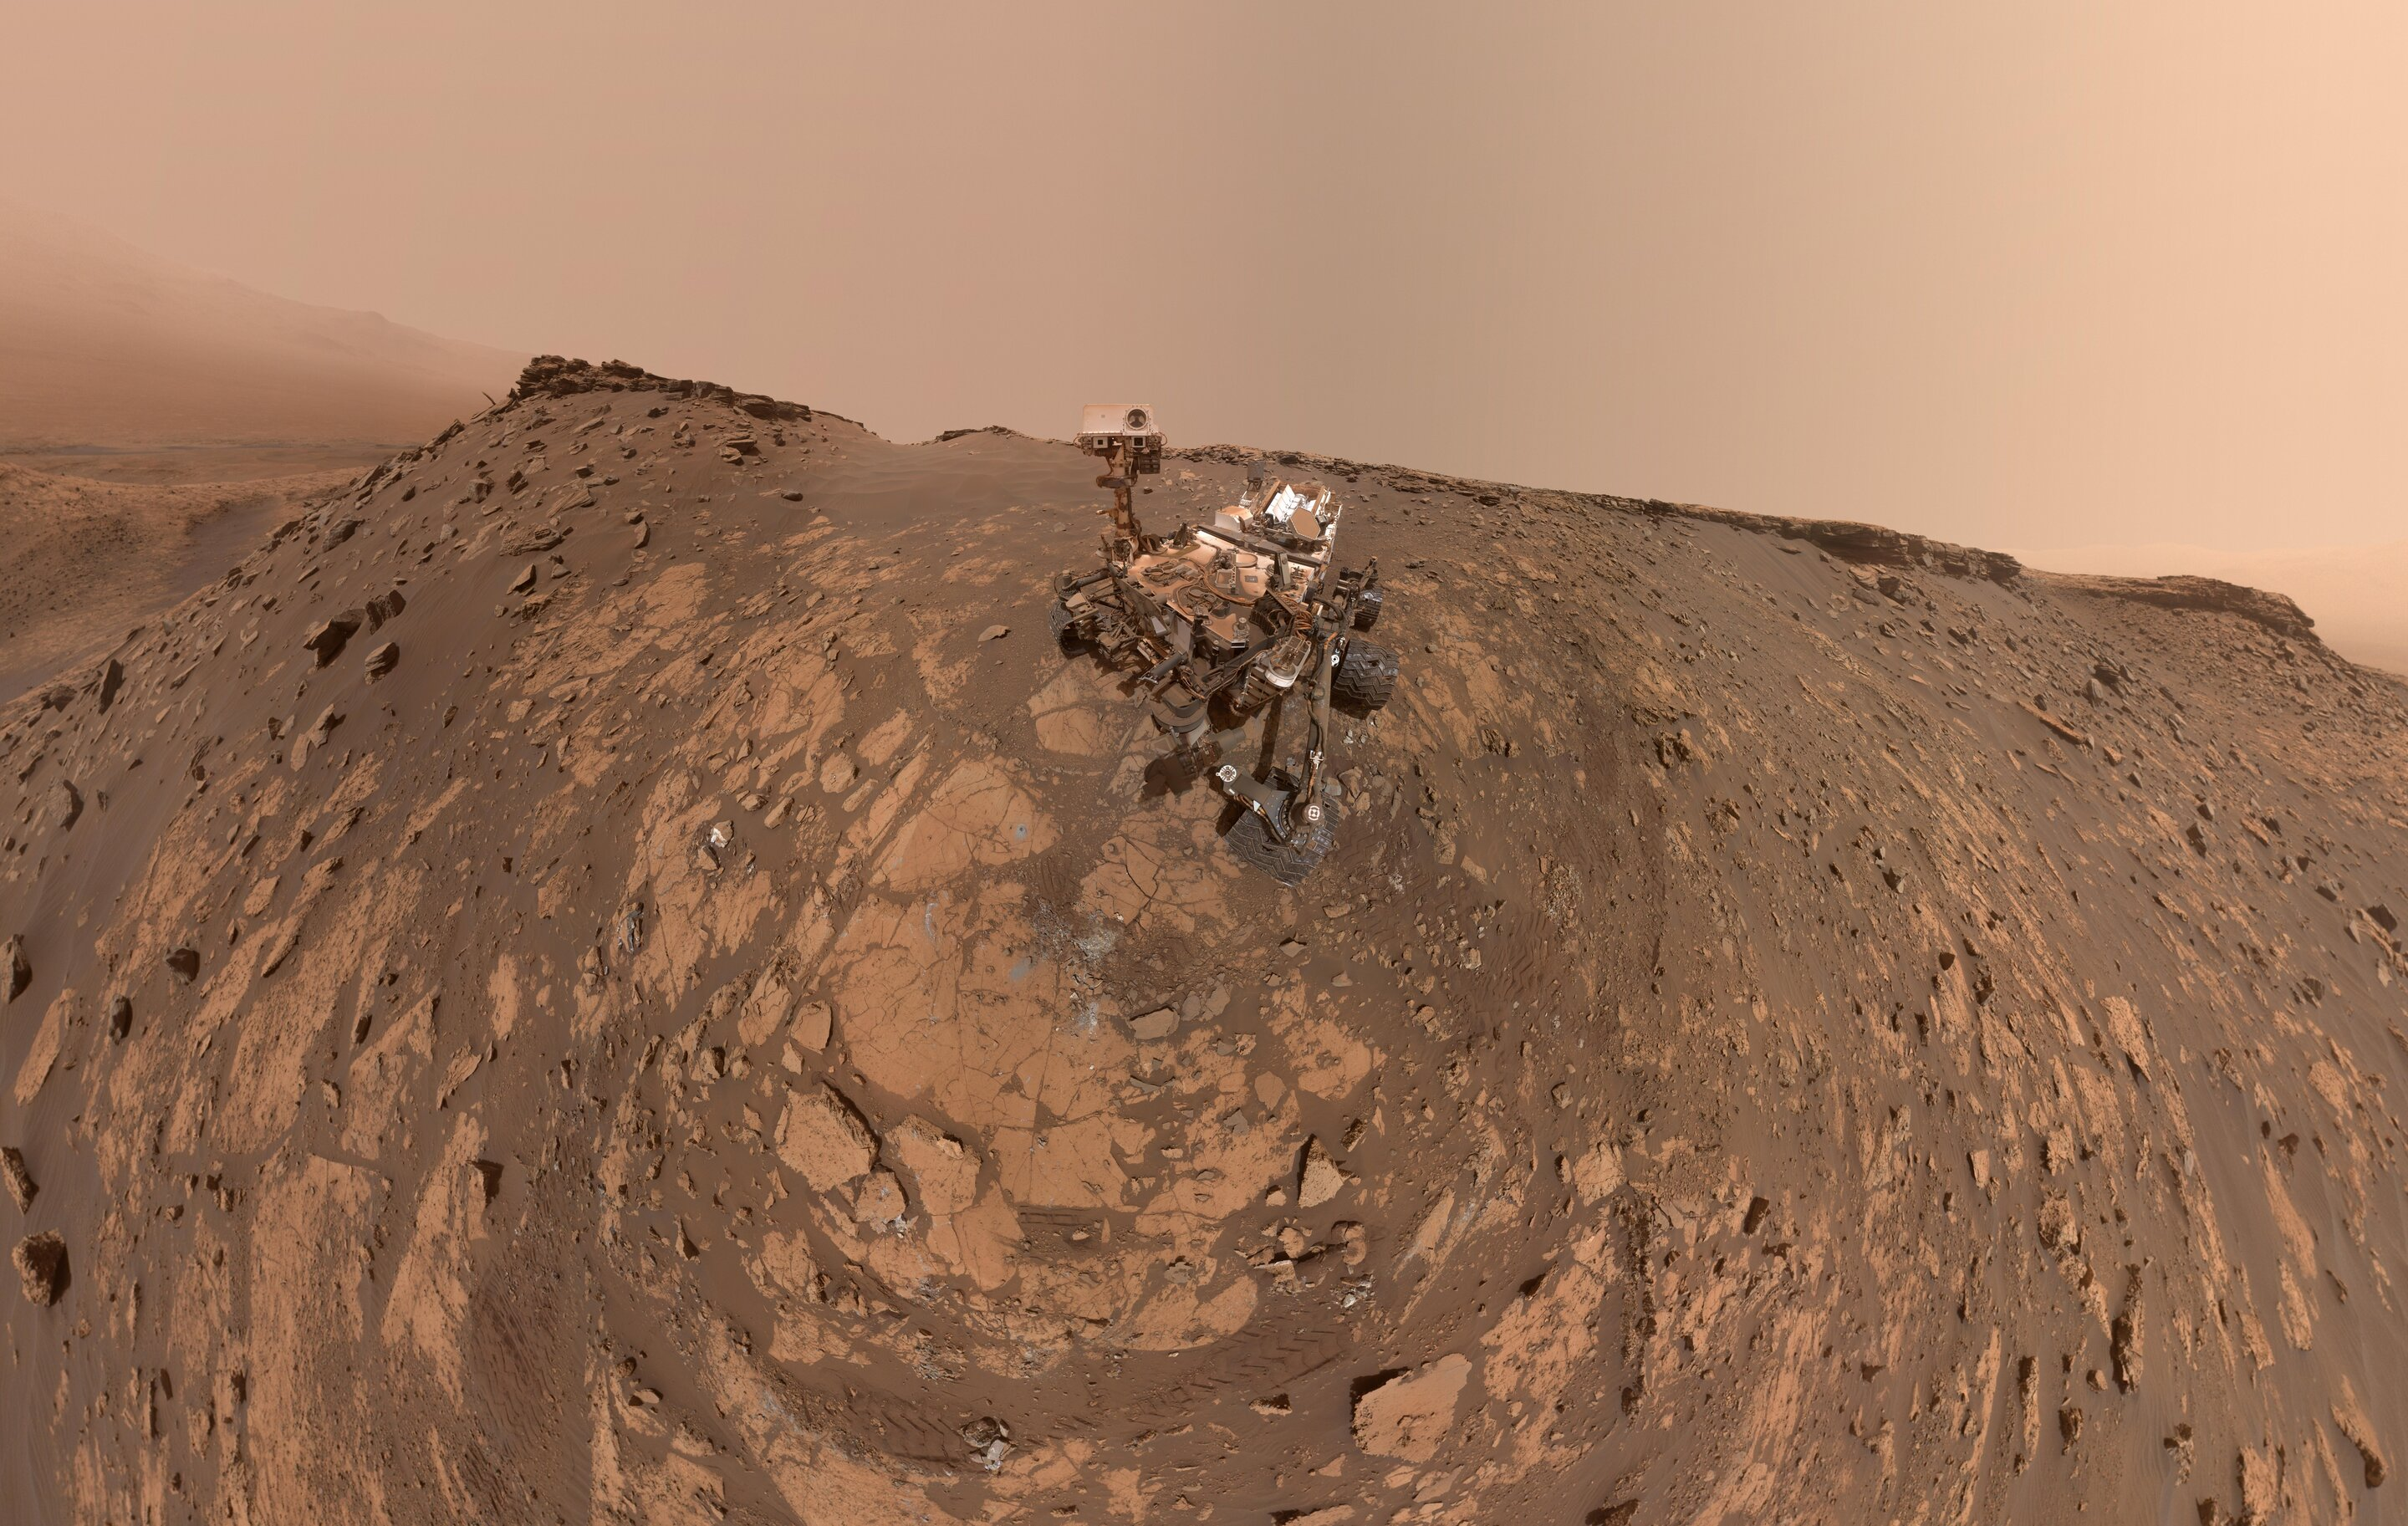 Curiosity Mars rover takes a new selfie before record climb thumbnail